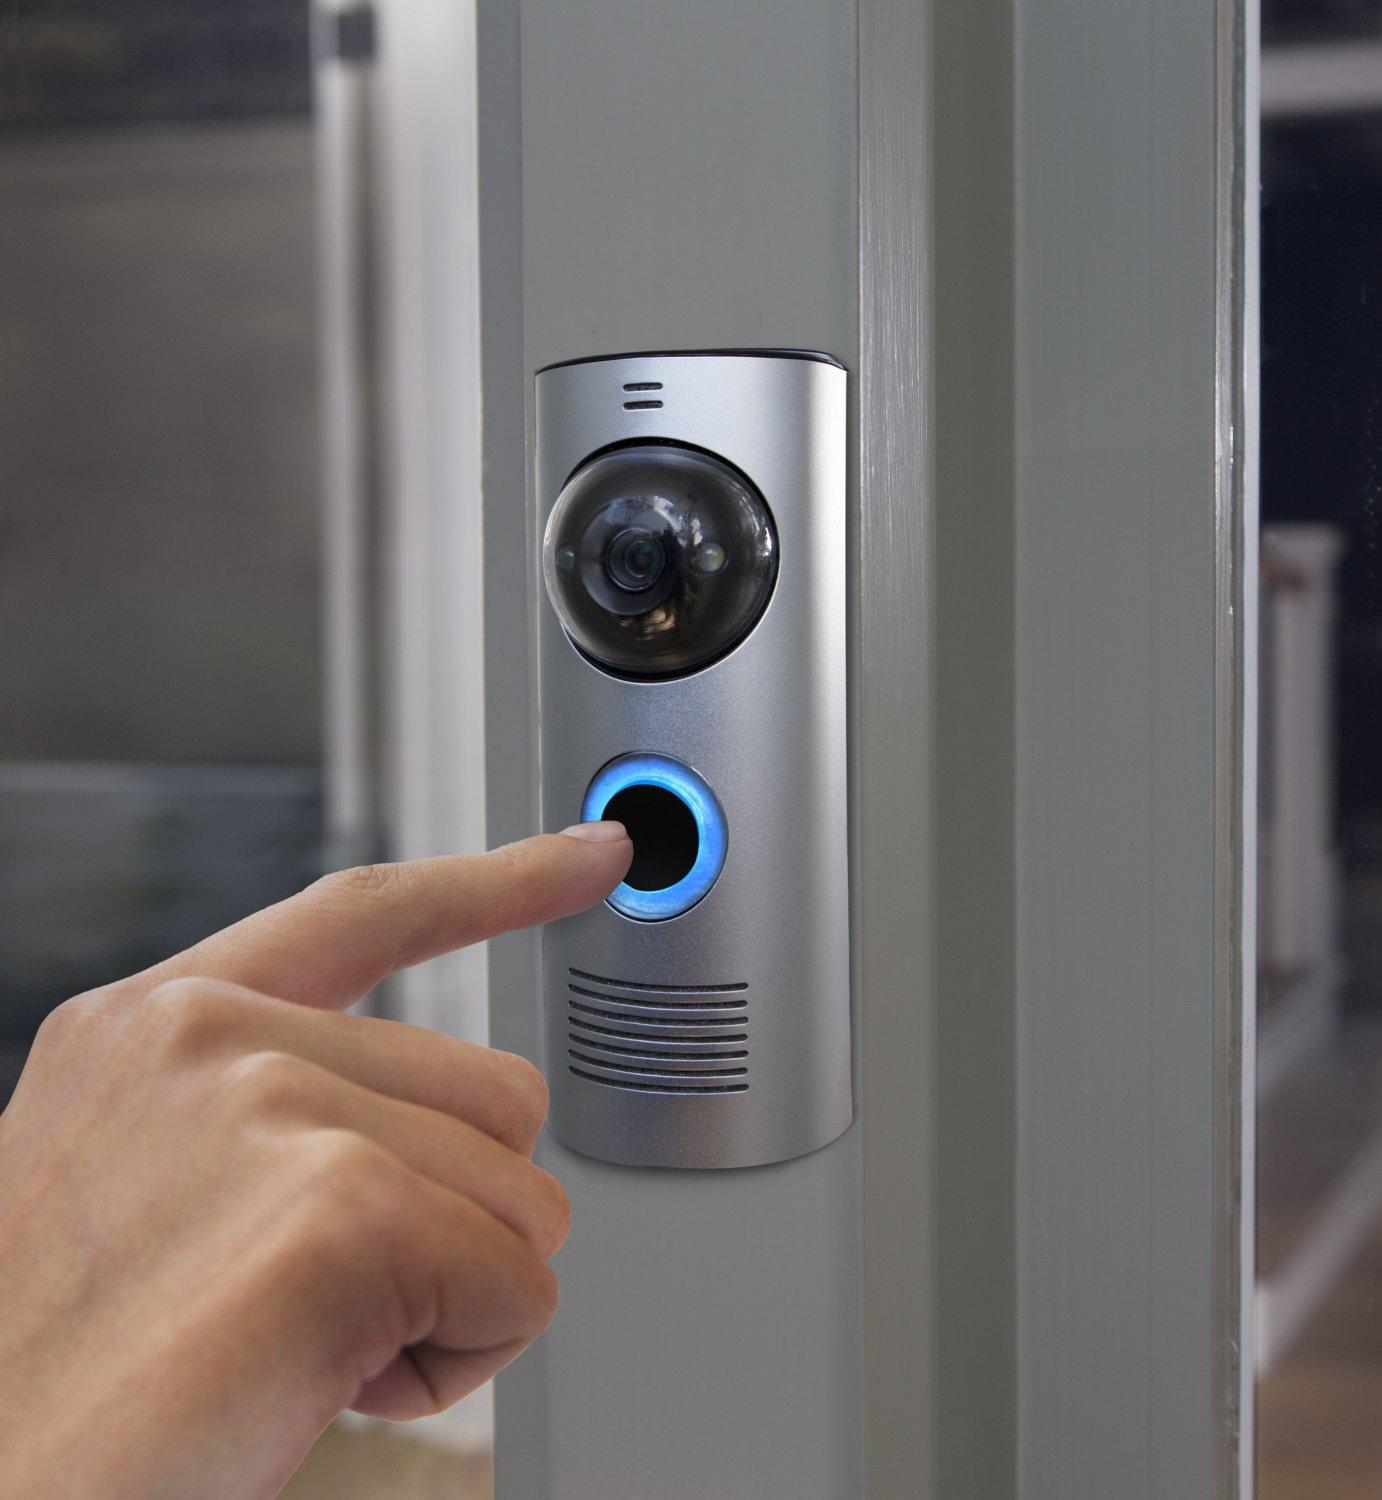 Some Notes Of Using Wireless Doorbell Techno Faq Wiring A Byron Systems Range In Price From 20 To 150 With The Higher End Including An Intercom System And Video Well Known Brands Like Heath Zenith